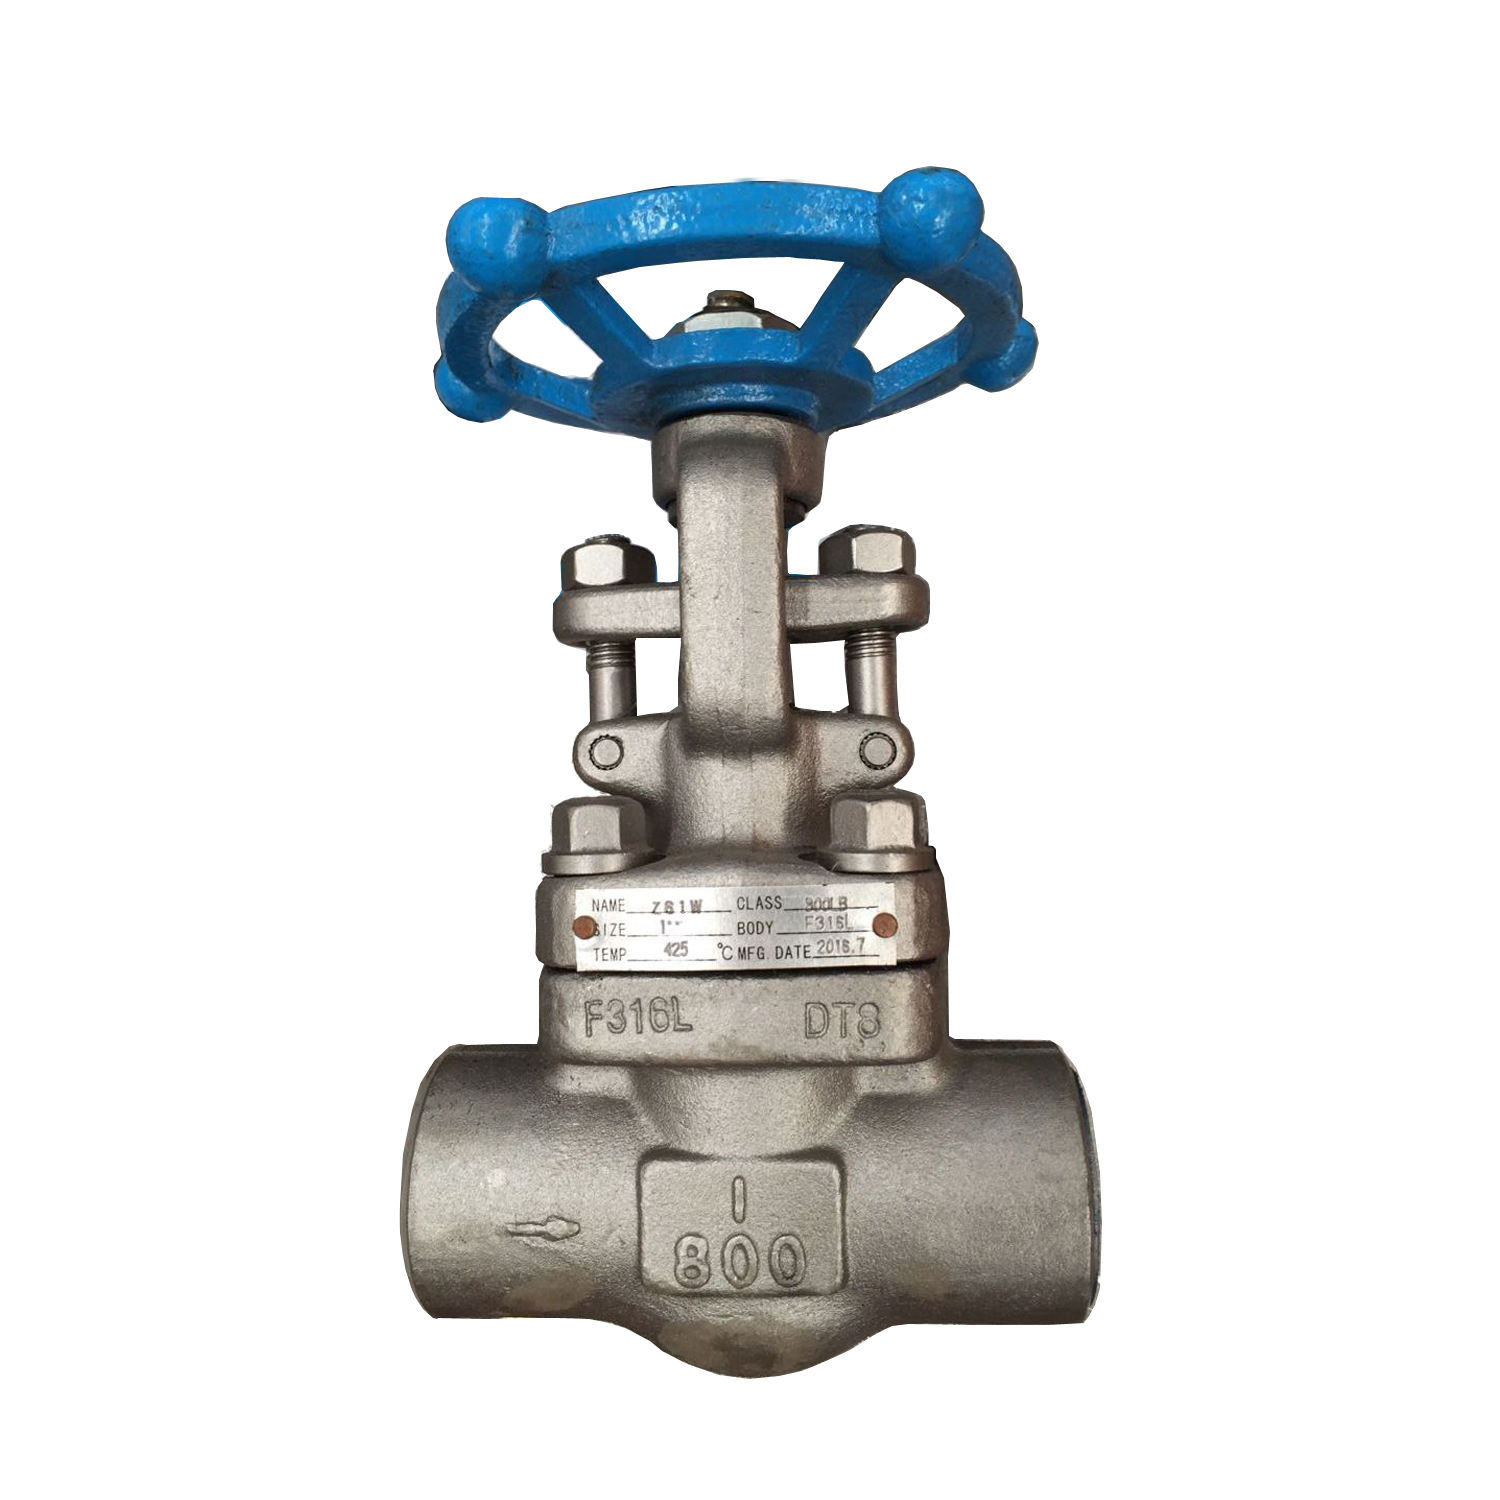 Ansi Api Roestvrij Staal Koolstofstaal Wcb Class150/300/600/900 Flens Globe Valve